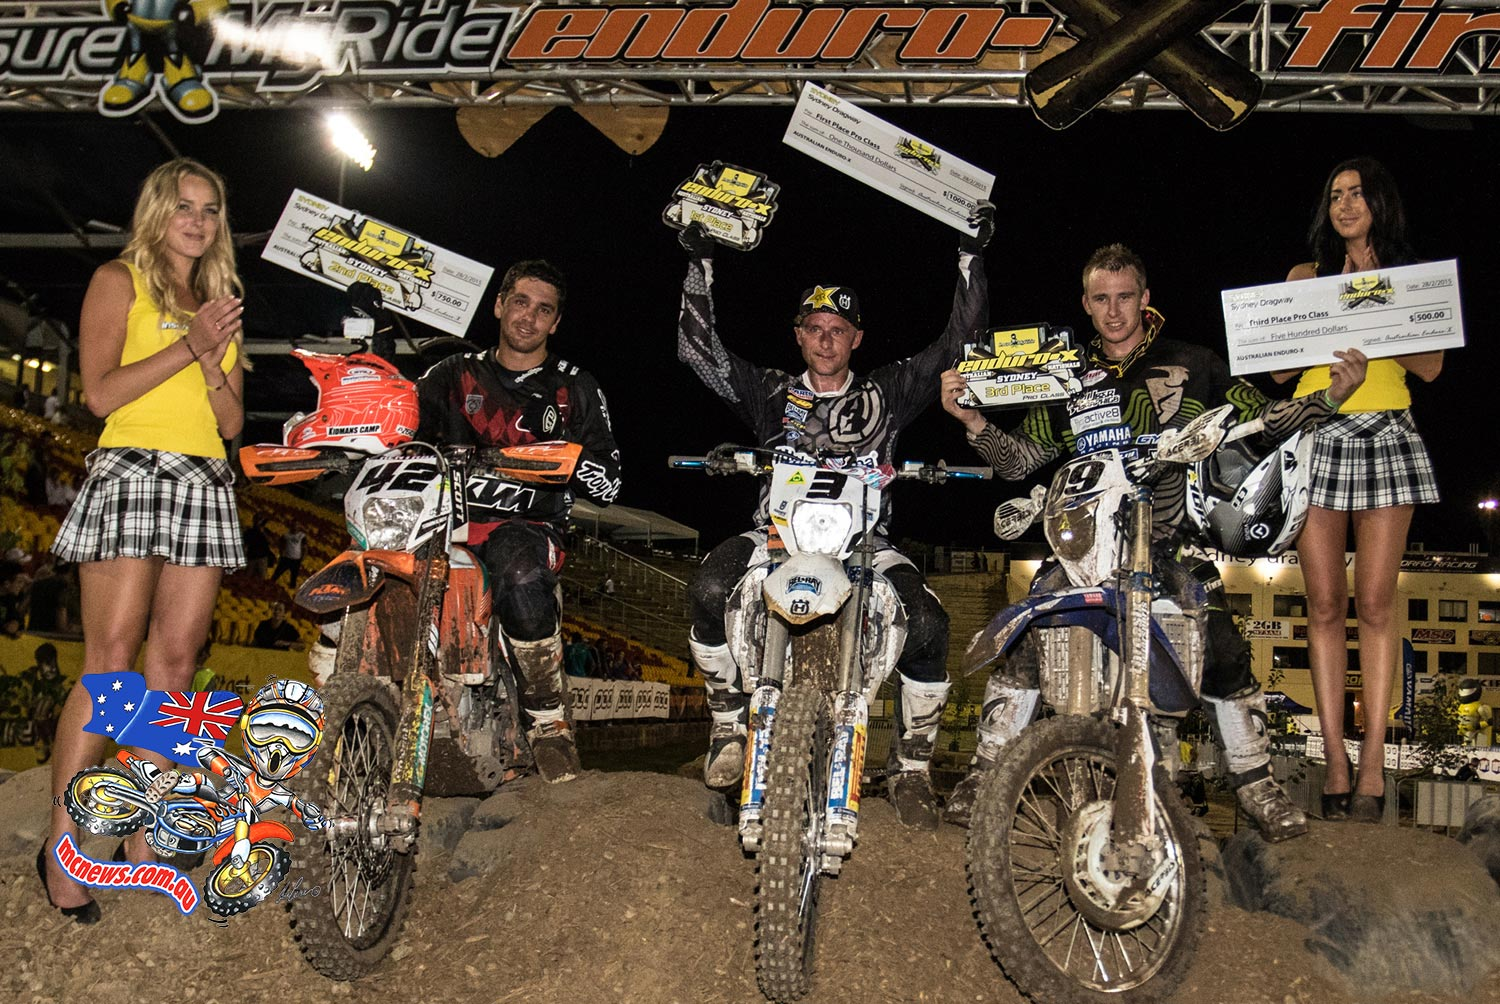 2015 InsureMyRide Australian Enduro-X Nationals, Round 2 overall results: 1. Mike Brown 75, 2. Tye Simmonds 60, 3. Josh Green 58